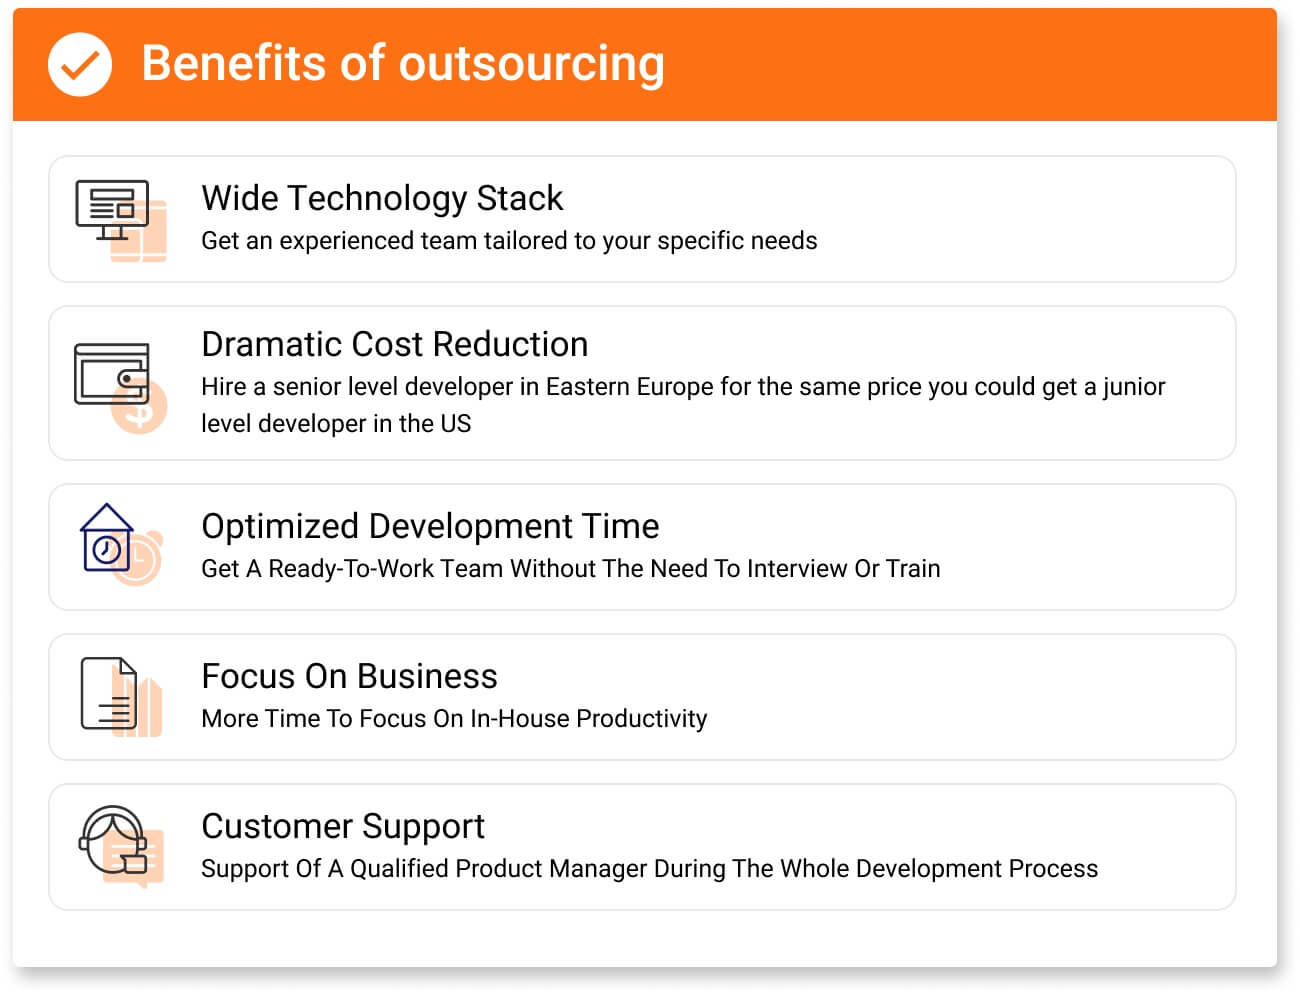 Benefits Of Outsourcing: Outsource Your Business App Needs